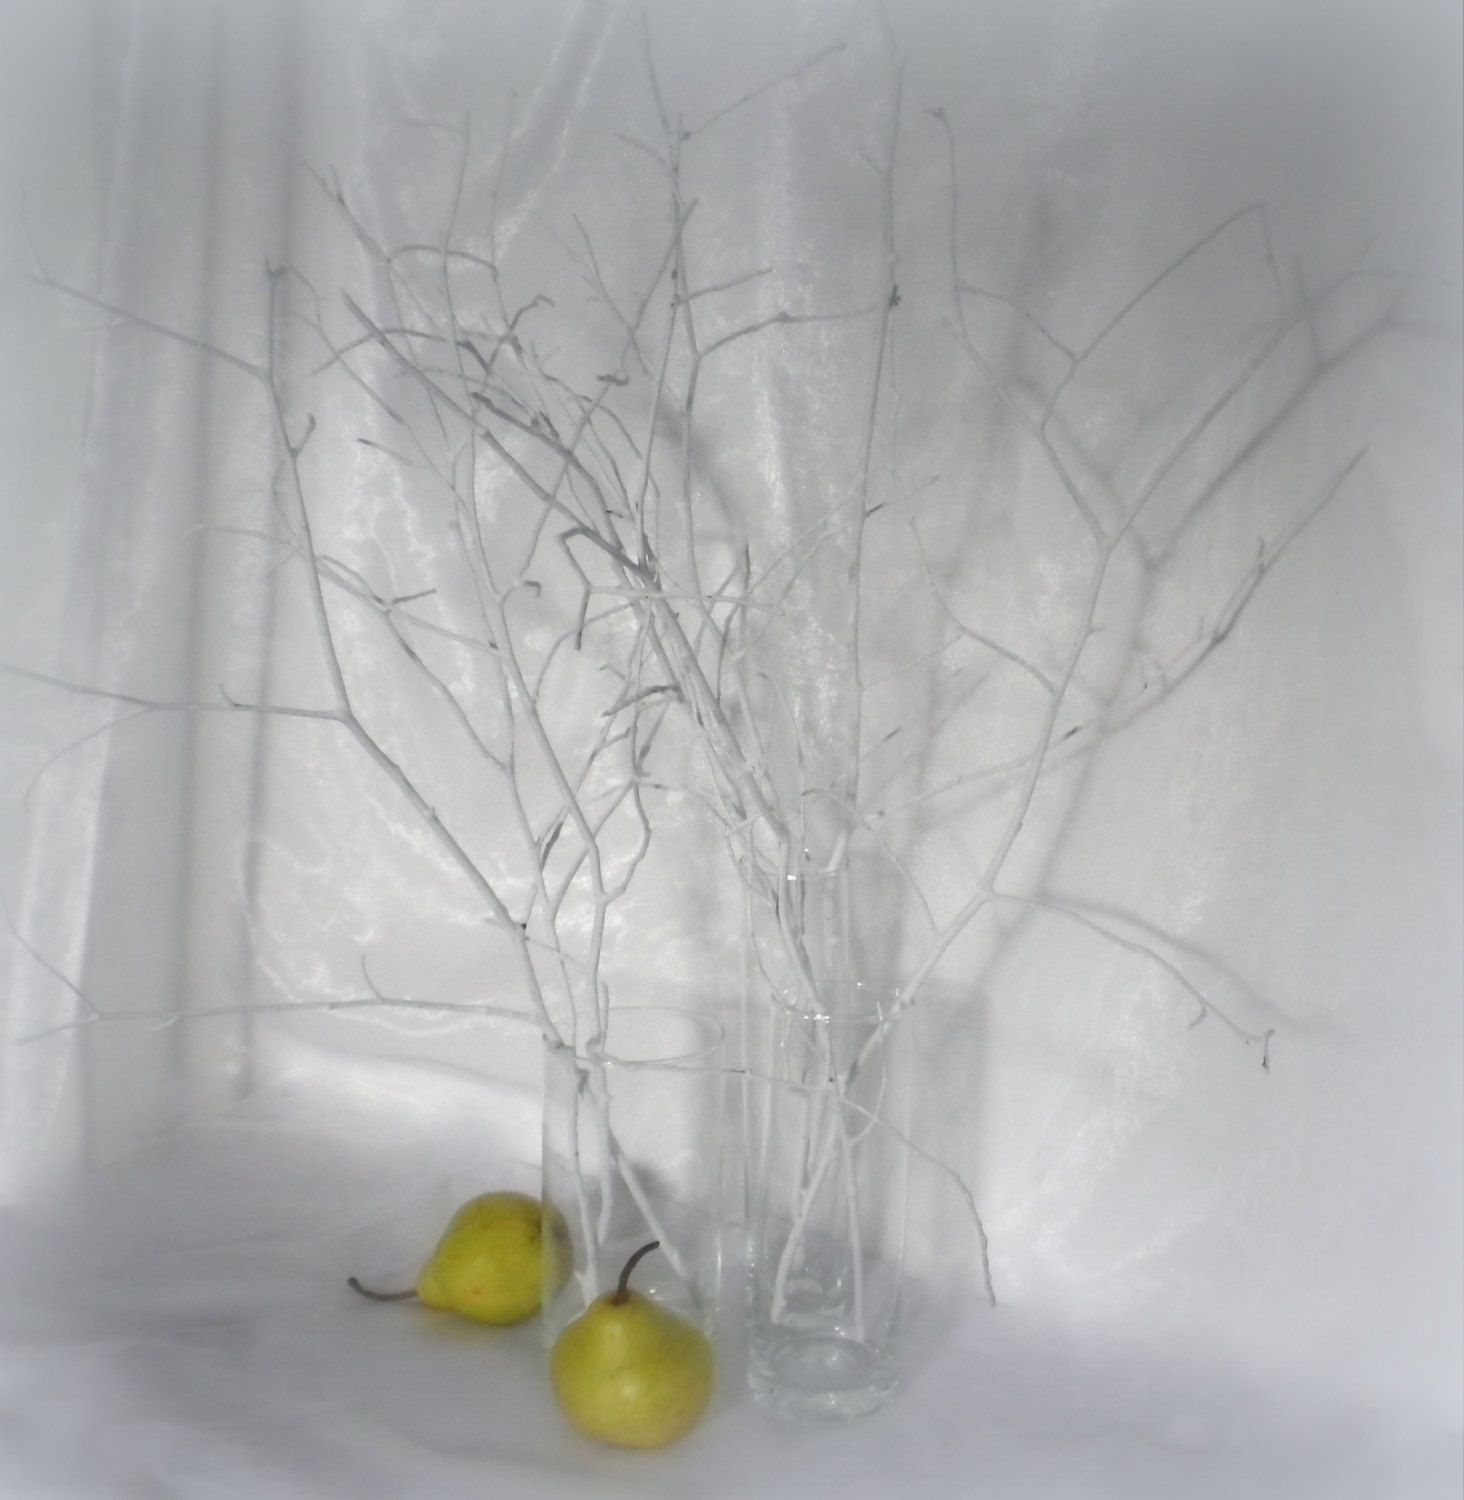 White Tree Branches Scandinavian Home Decor Woodland Decor Painted Branches Wedding Centerpiece Natural Decorative Twigs Vase Filler Painted Branches White Tree Branches Tree Branch Centerpieces